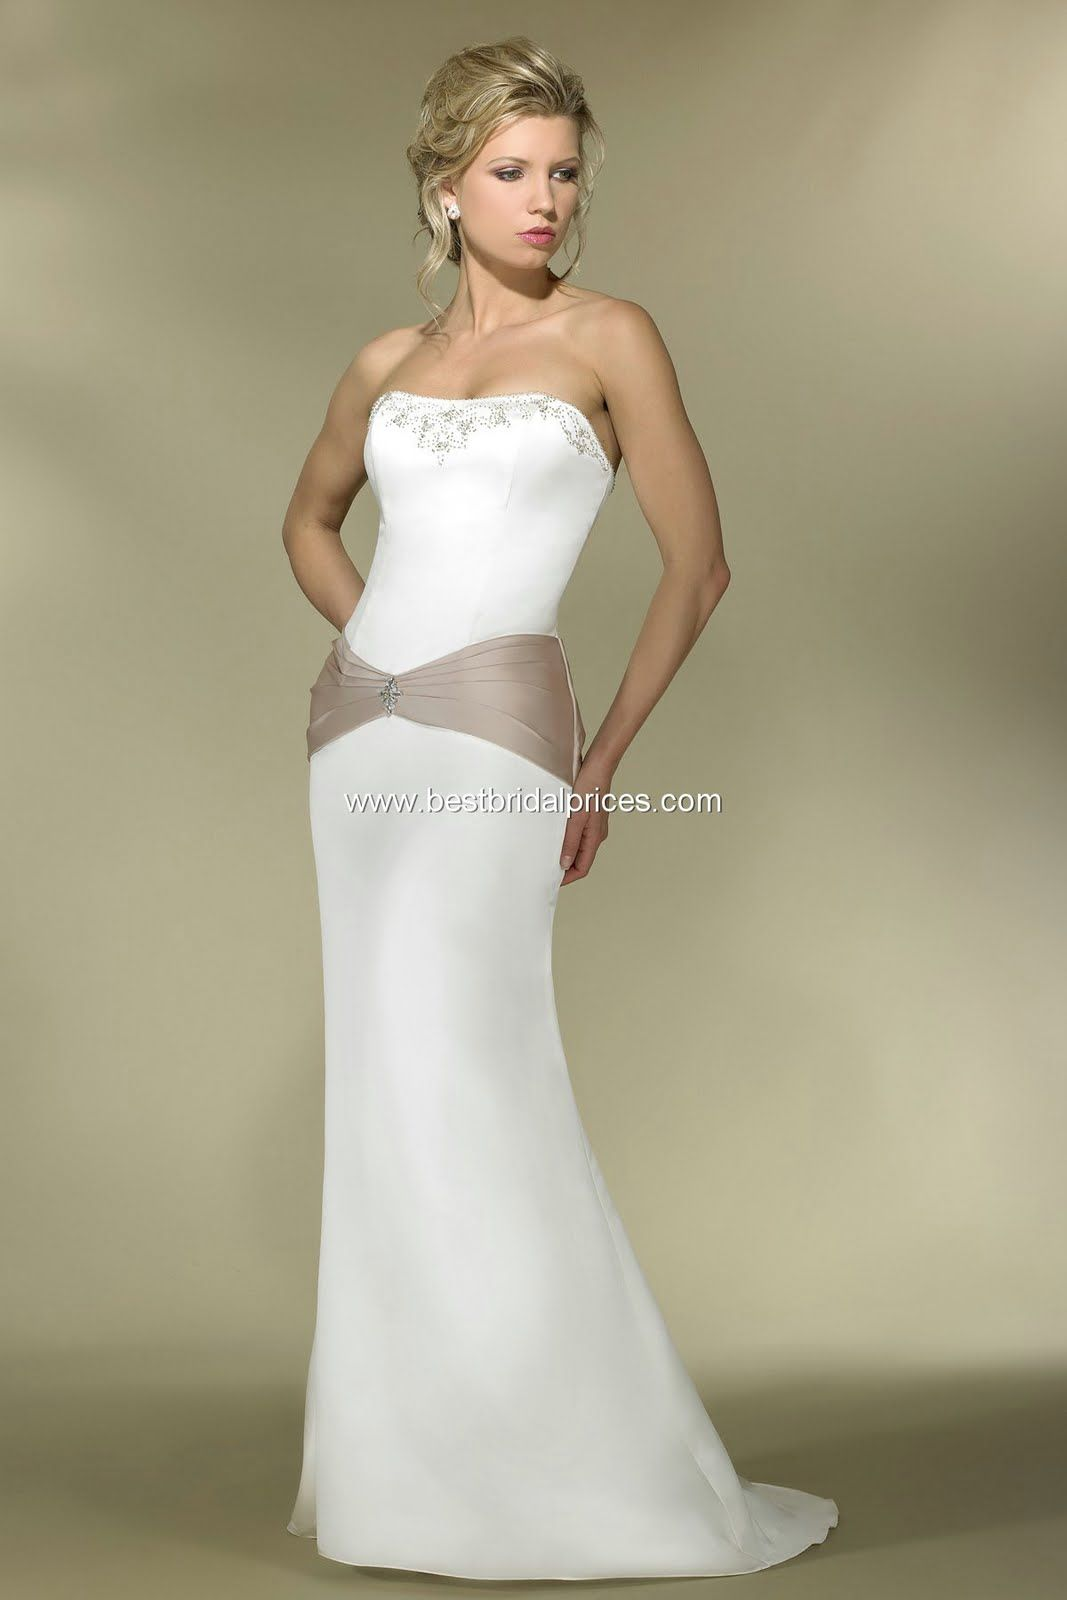 Wedding dresses for second marriages over 50 description for Wedding dress second marriage over 50